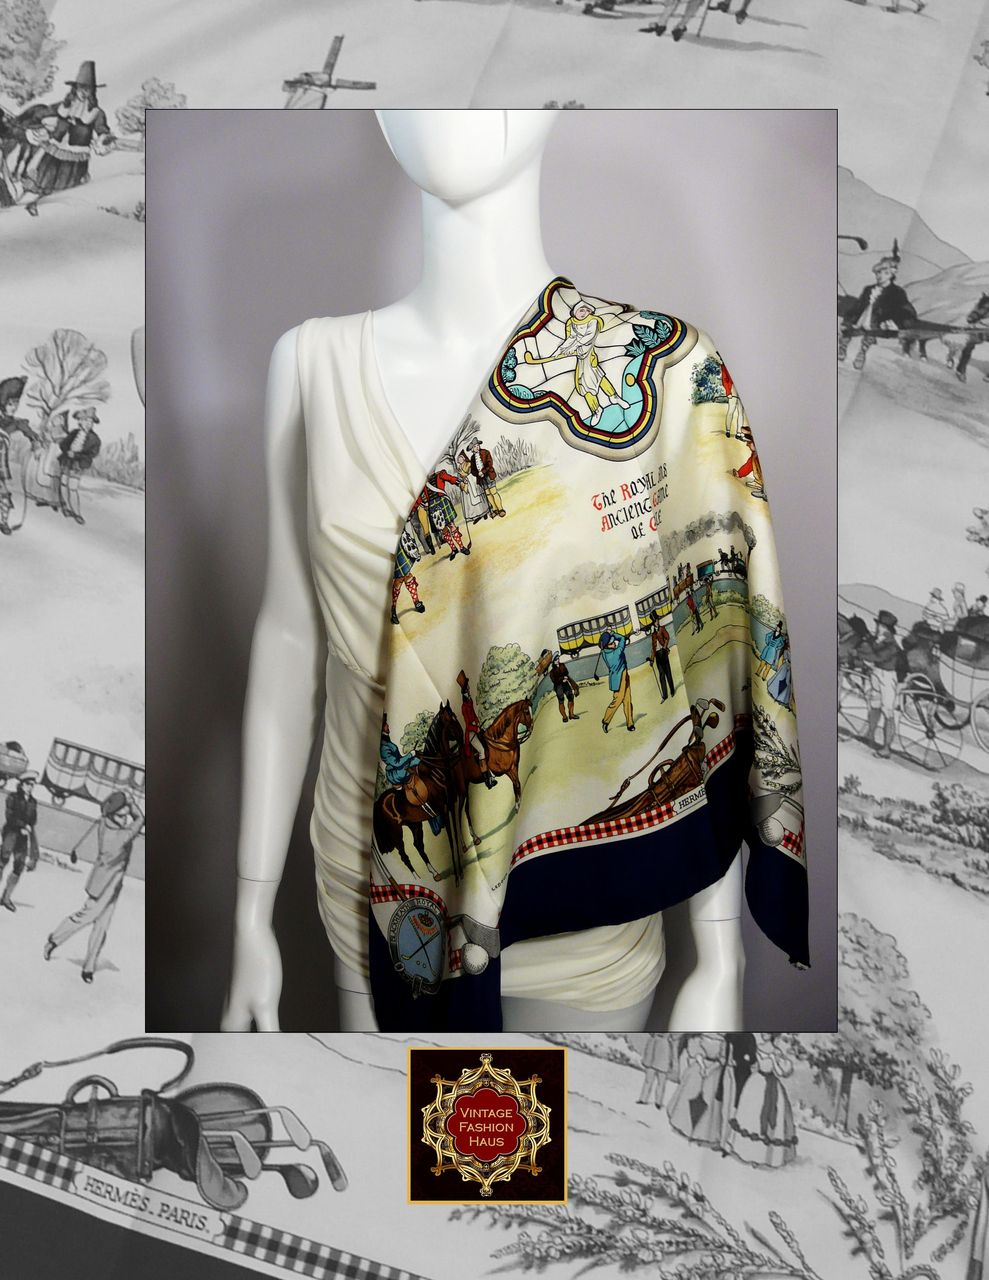 Authentic Vintage Hermes Silk Scarf  Carre The Royal and Ancient Game  Authentic Vintage Hermes Scarves